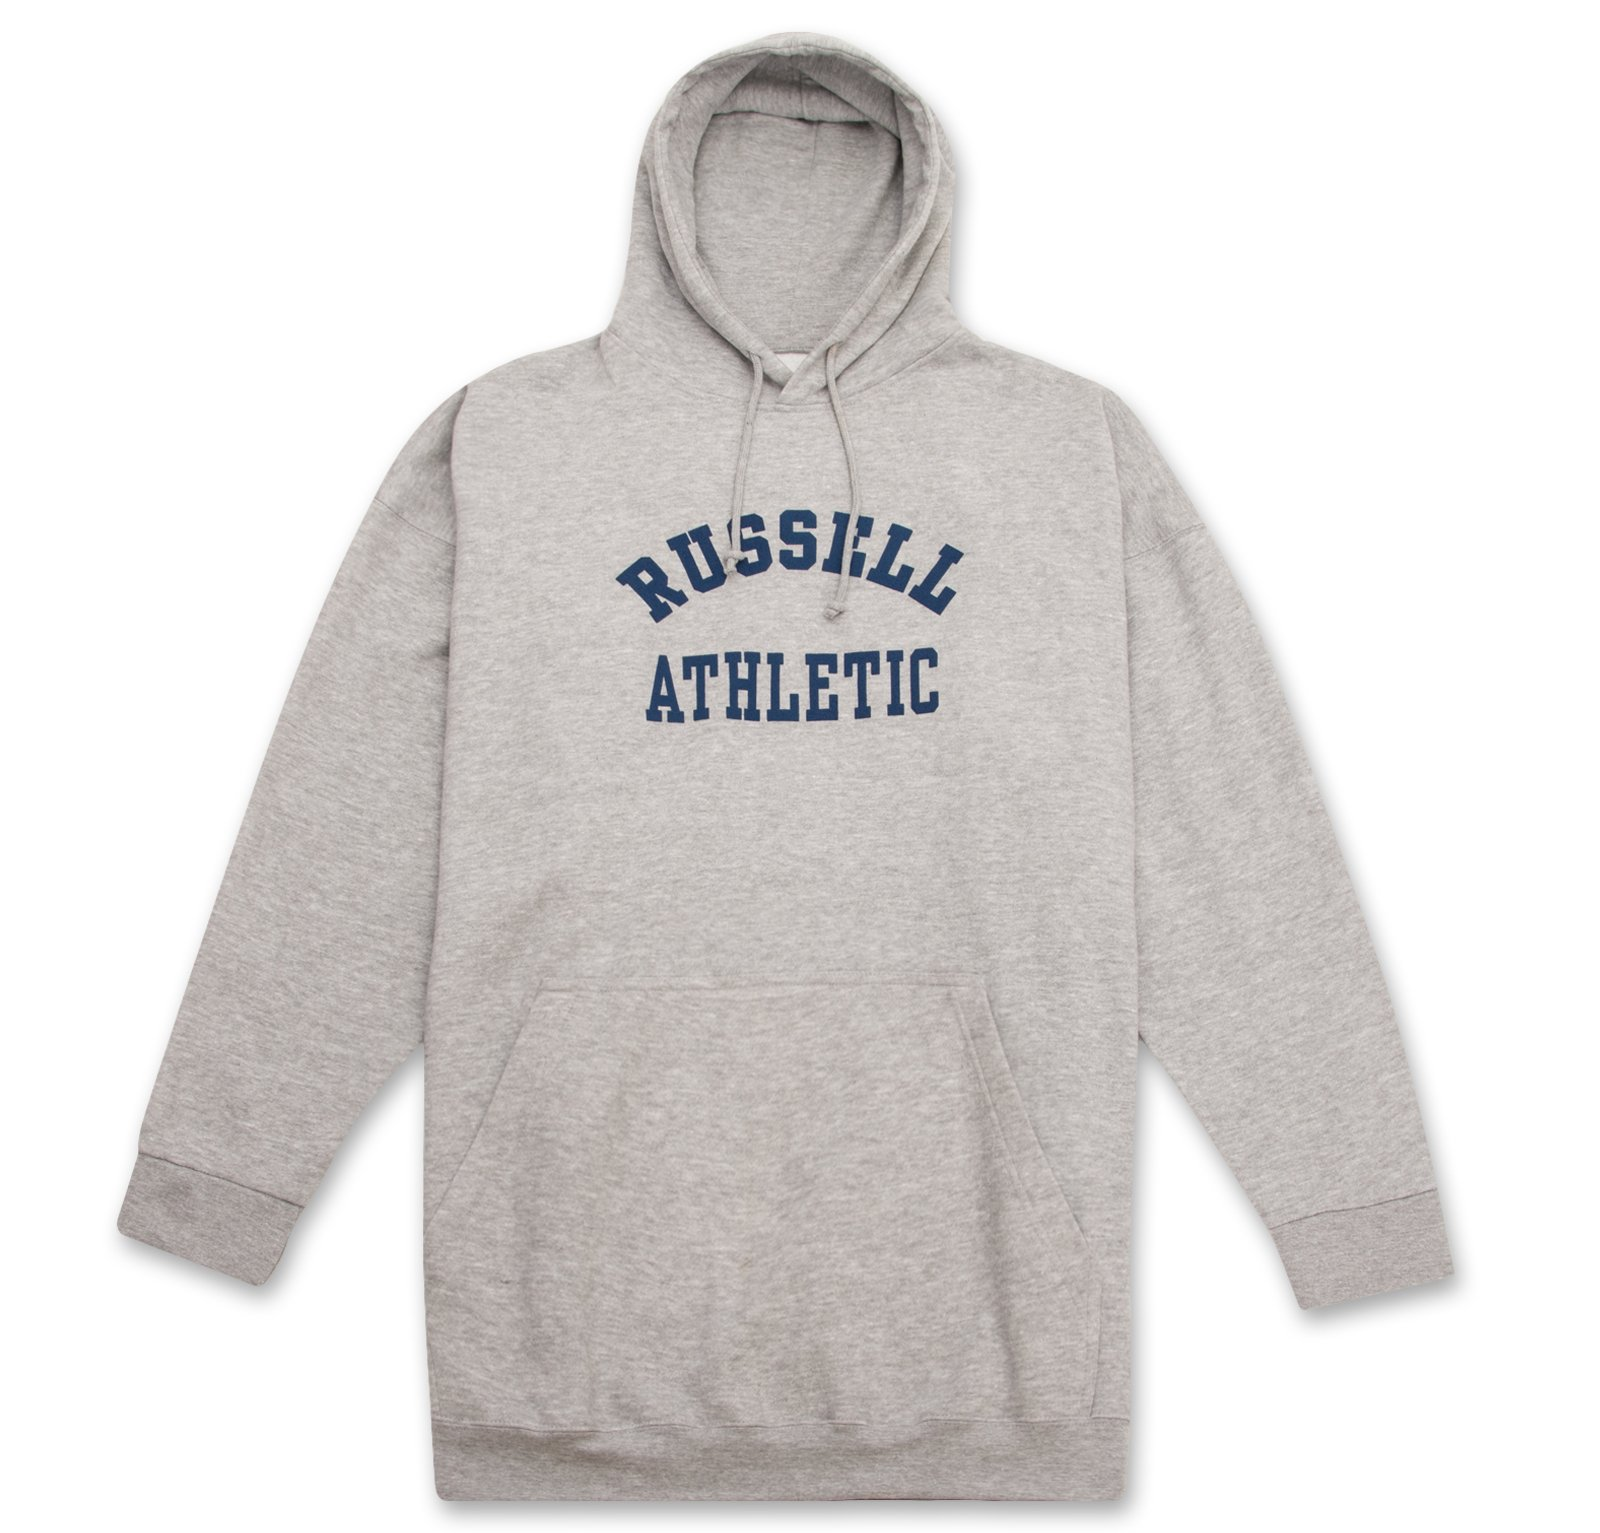 Russell Big and Tall Mens Active Fleece Pullover Hoodie Sweatshirt